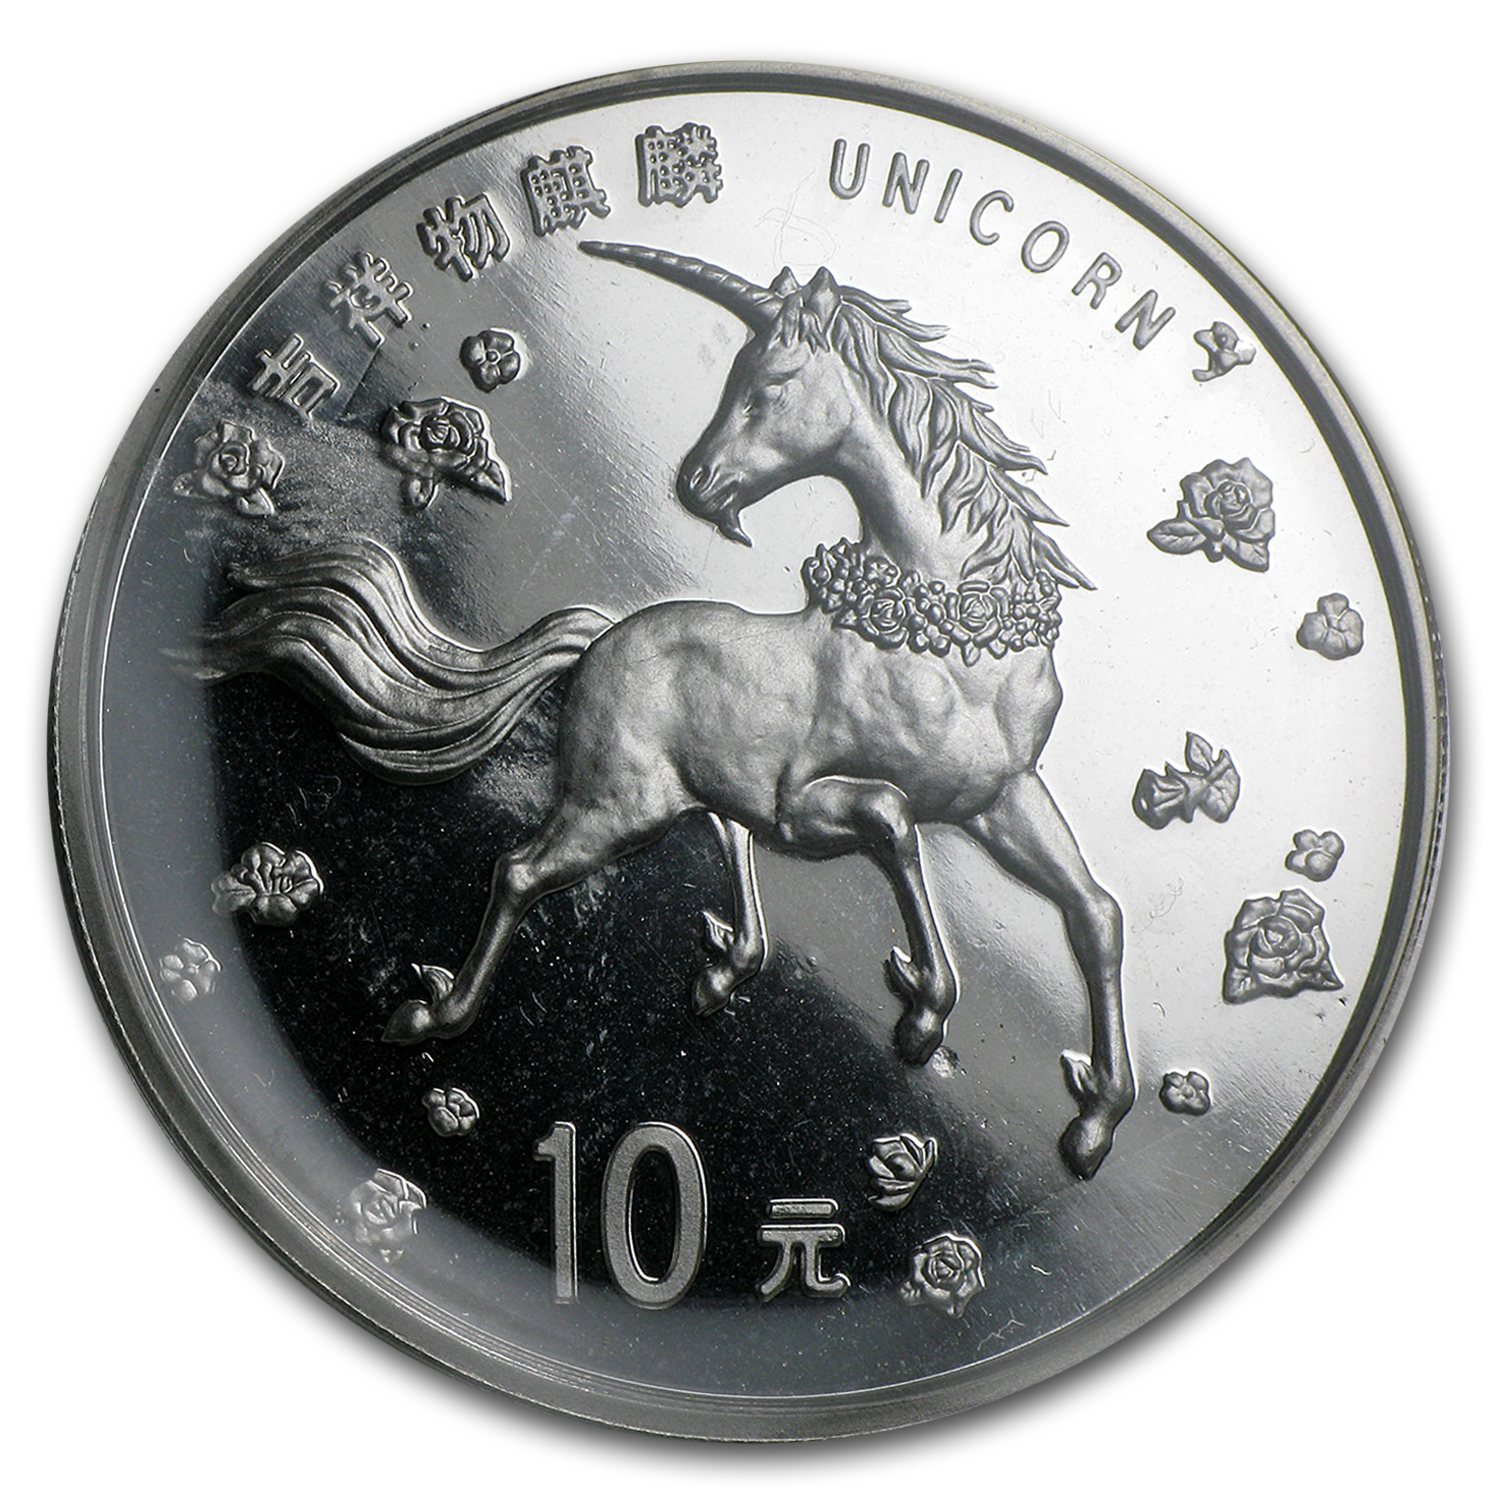 1997 China 1 oz Silver 10 Yuan Unicorn BU (Sealed)